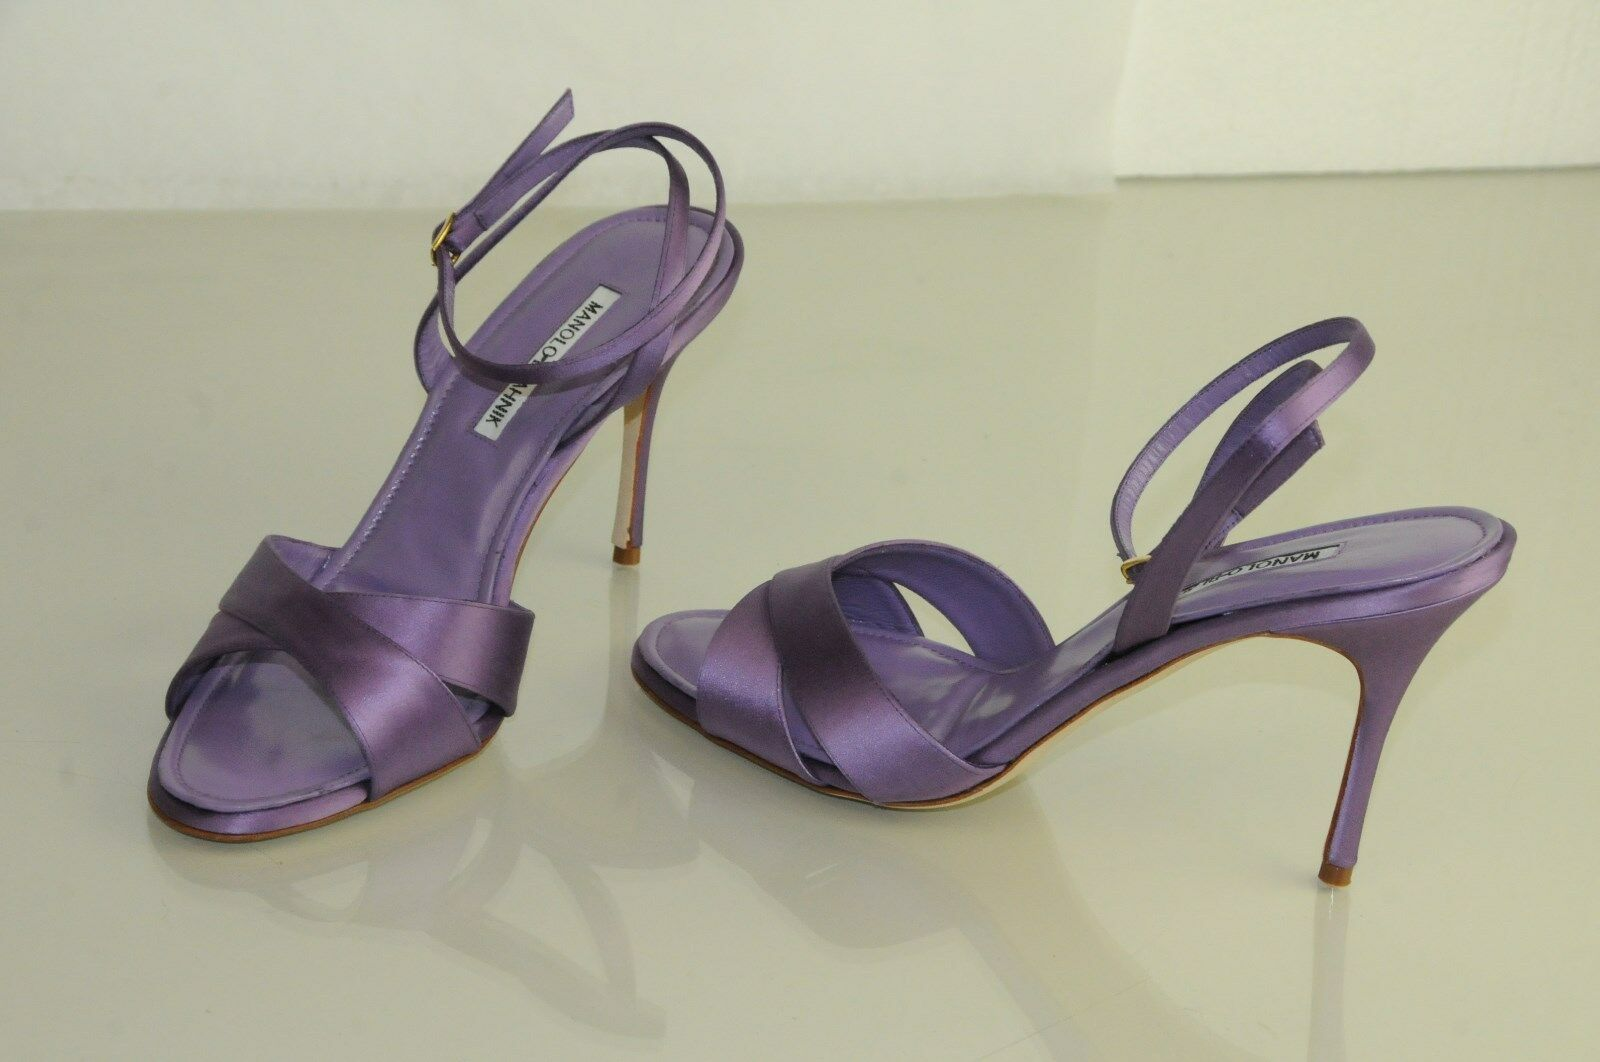 895 New Manolo Blahnik Royal Purple Satin Ankle Strap Sandals shoes 40.5